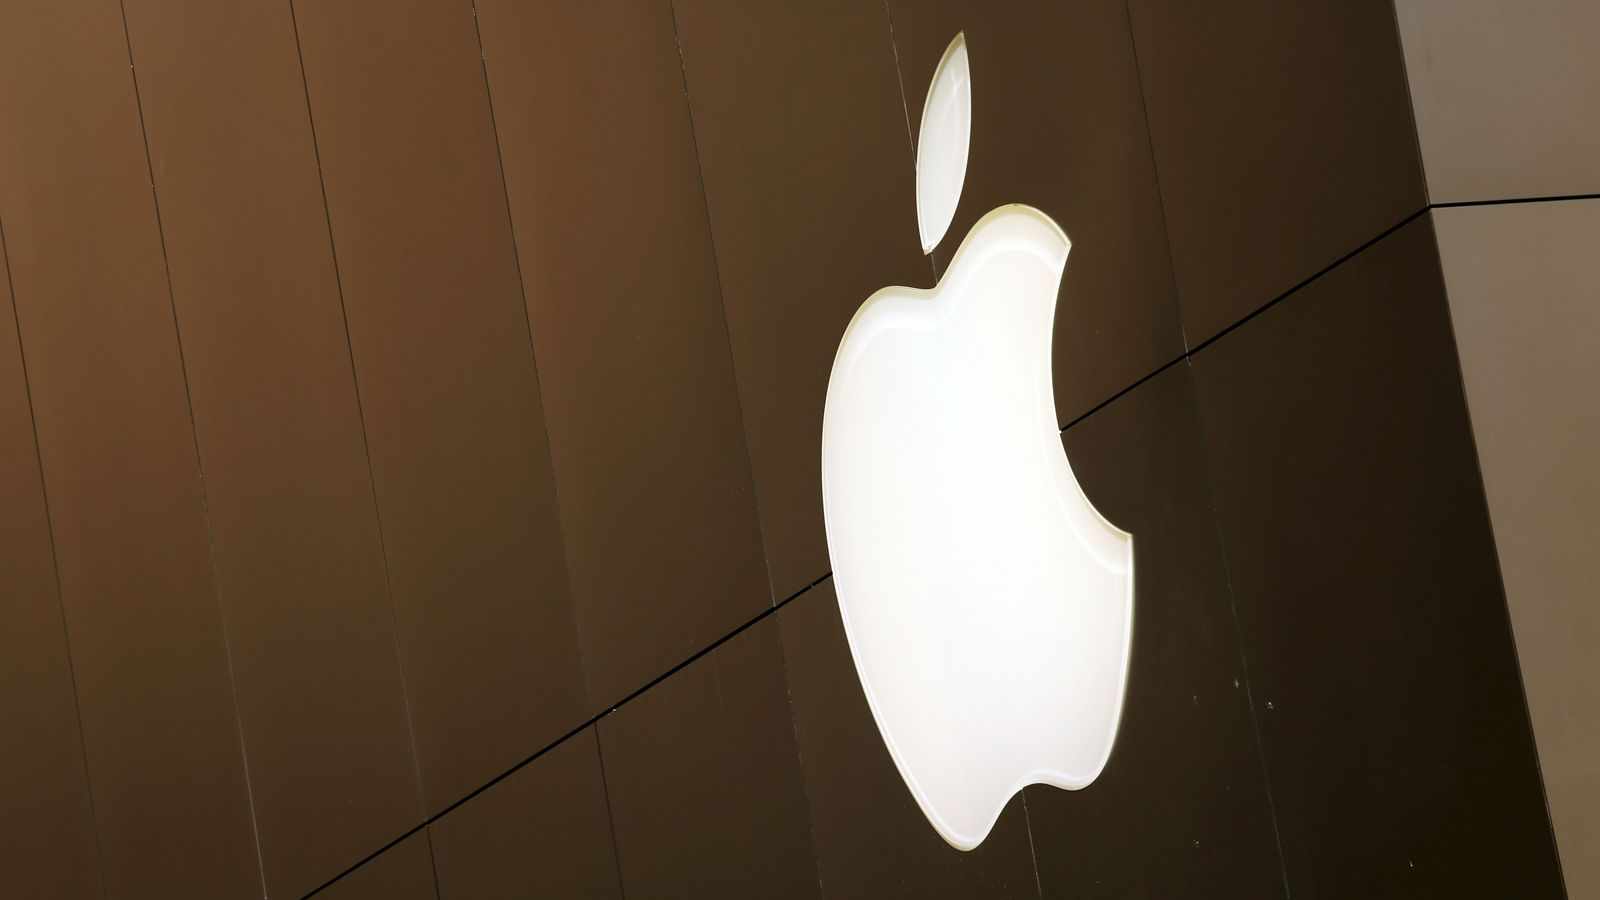 Apple delays launch of controversial child safety features